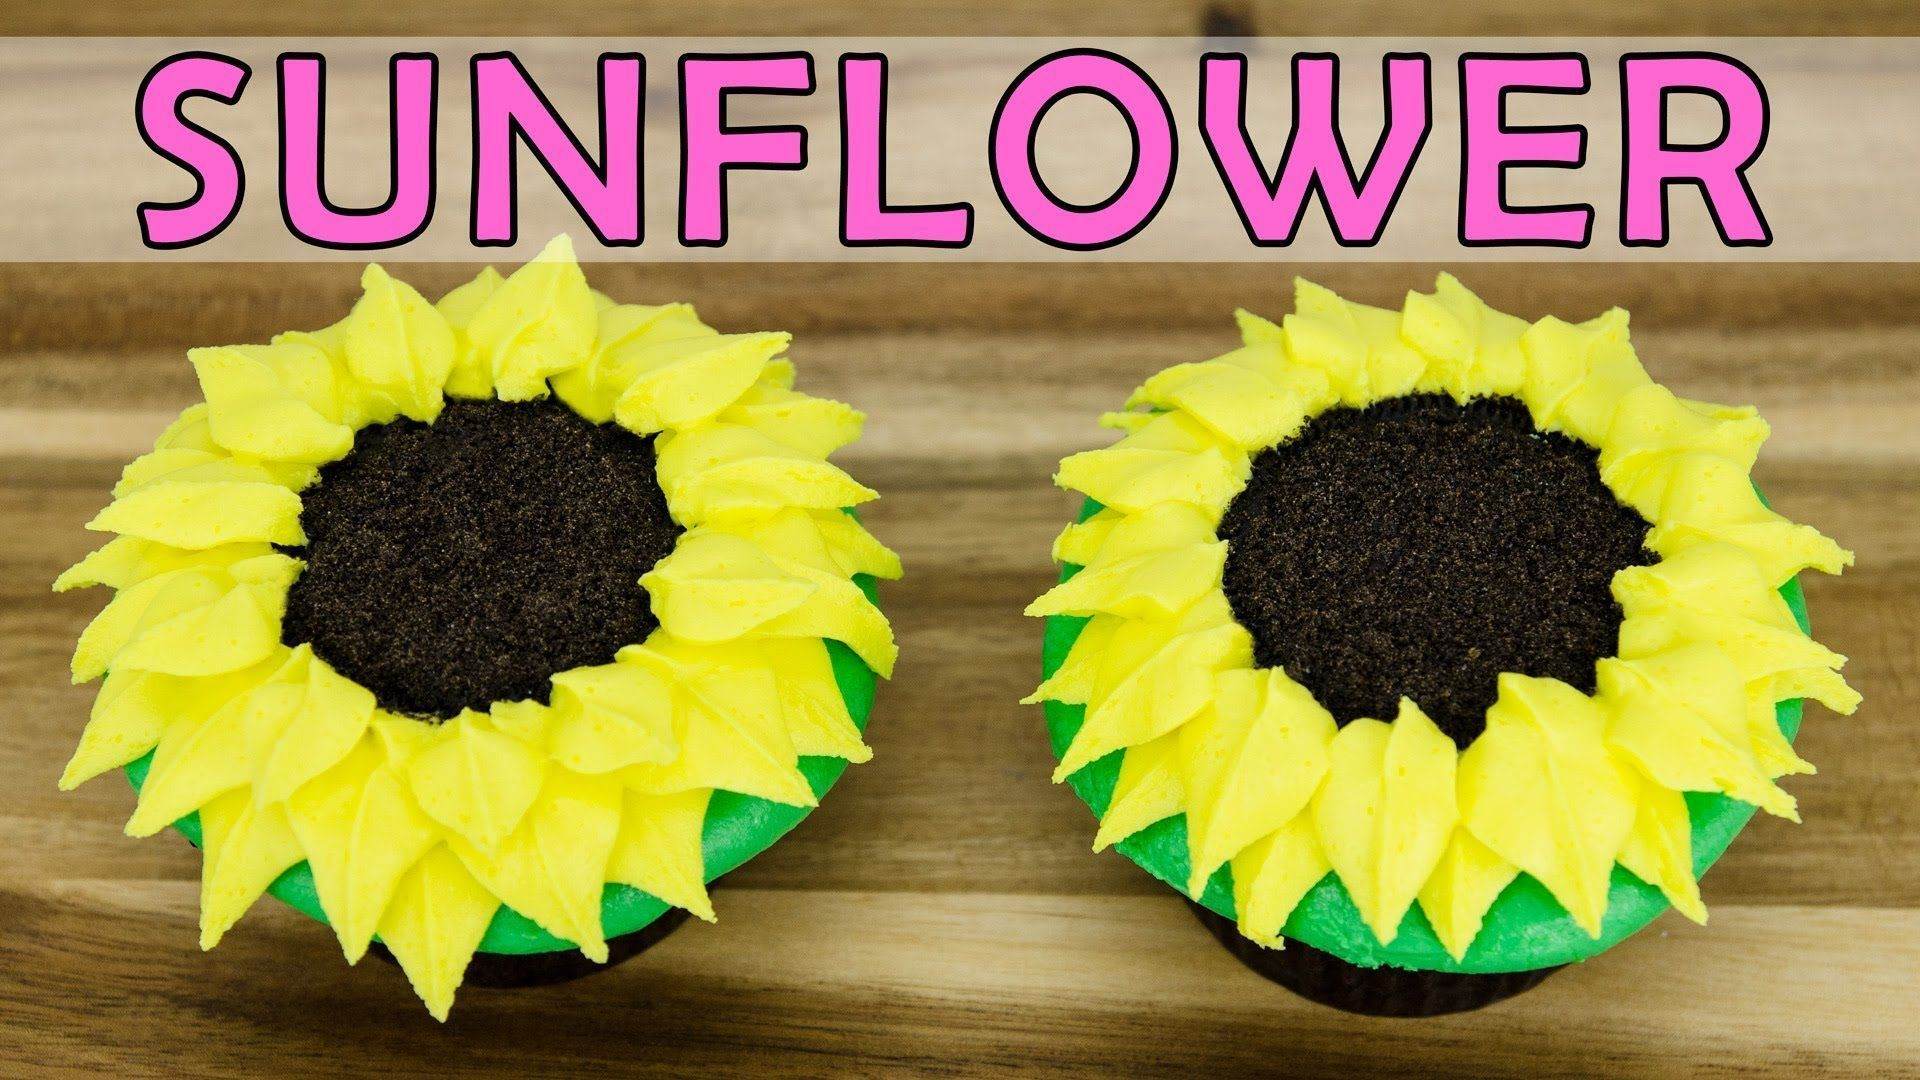 Sunflower Cupcakes: How to Make by Cookies Cupcakes and Cardio #sunflowercupcakes Sunflower Cupcakes: How to Make by Cookies Cupcakes and Cardio #sunflowercupcakes Sunflower Cupcakes: How to Make by Cookies Cupcakes and Cardio #sunflowercupcakes Sunflower Cupcakes: How to Make by Cookies Cupcakes and Cardio #sunflowercupcakes